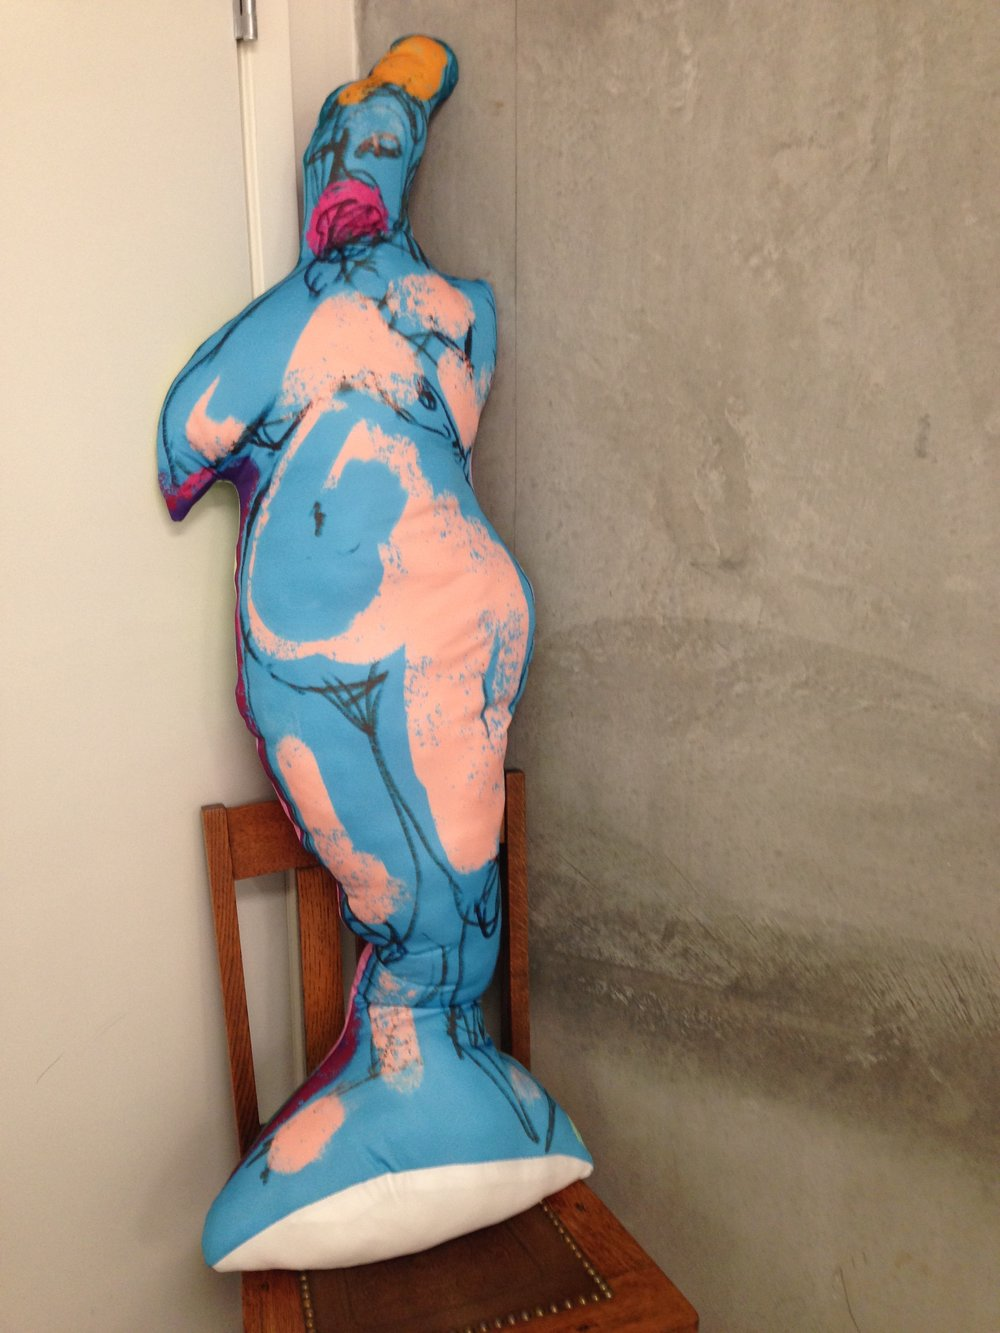 Did you see her? Blue Woman with Pink Posey. She's the first of my life-sized soft sculptures of women. So excited about this new series. Hoping to make a roomful at the next show!